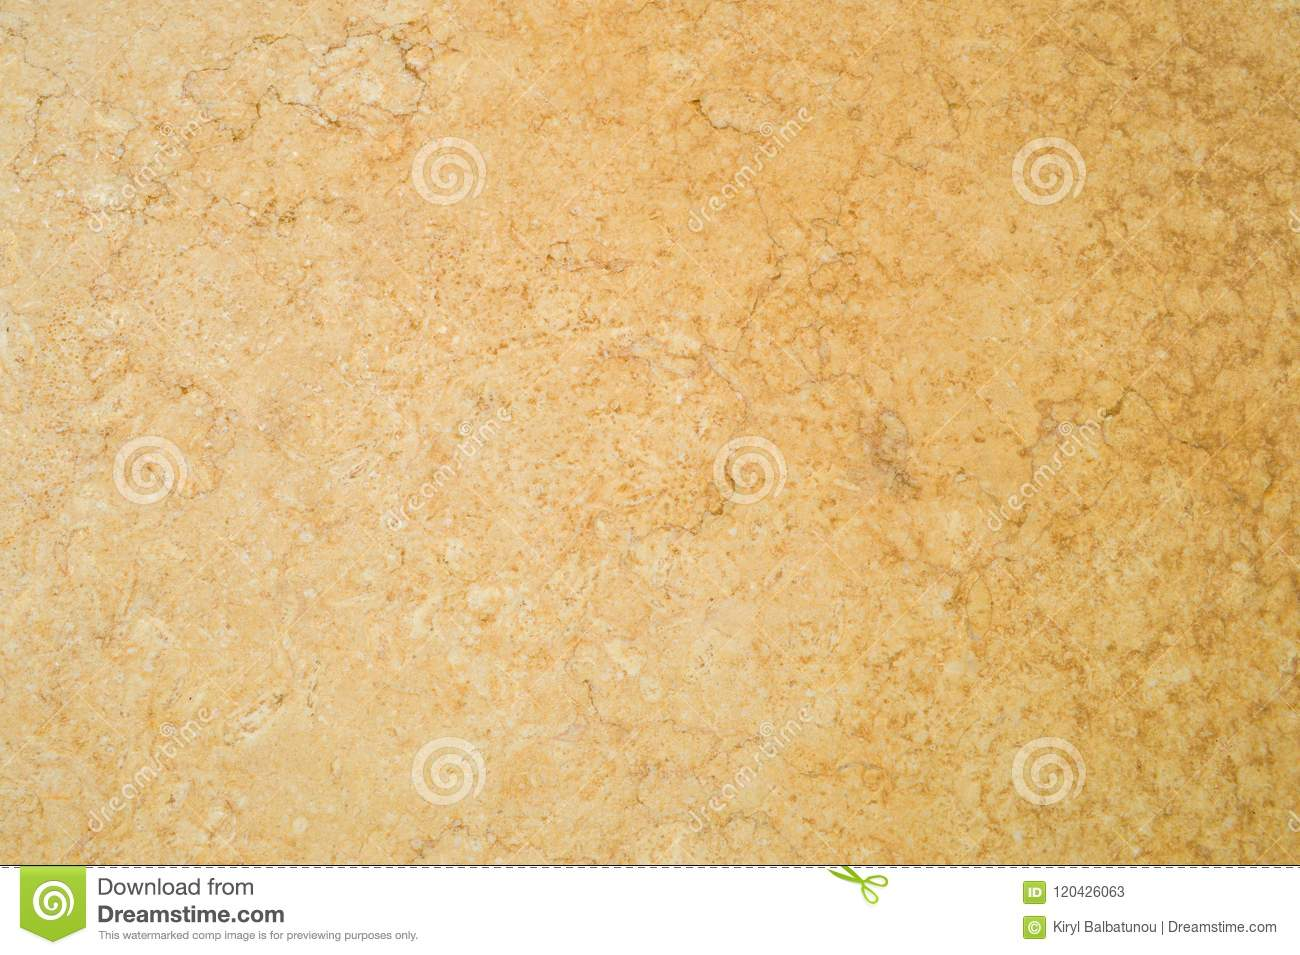 The Texture Is Beige, Brown, The Wall Covering Is Smooth ...